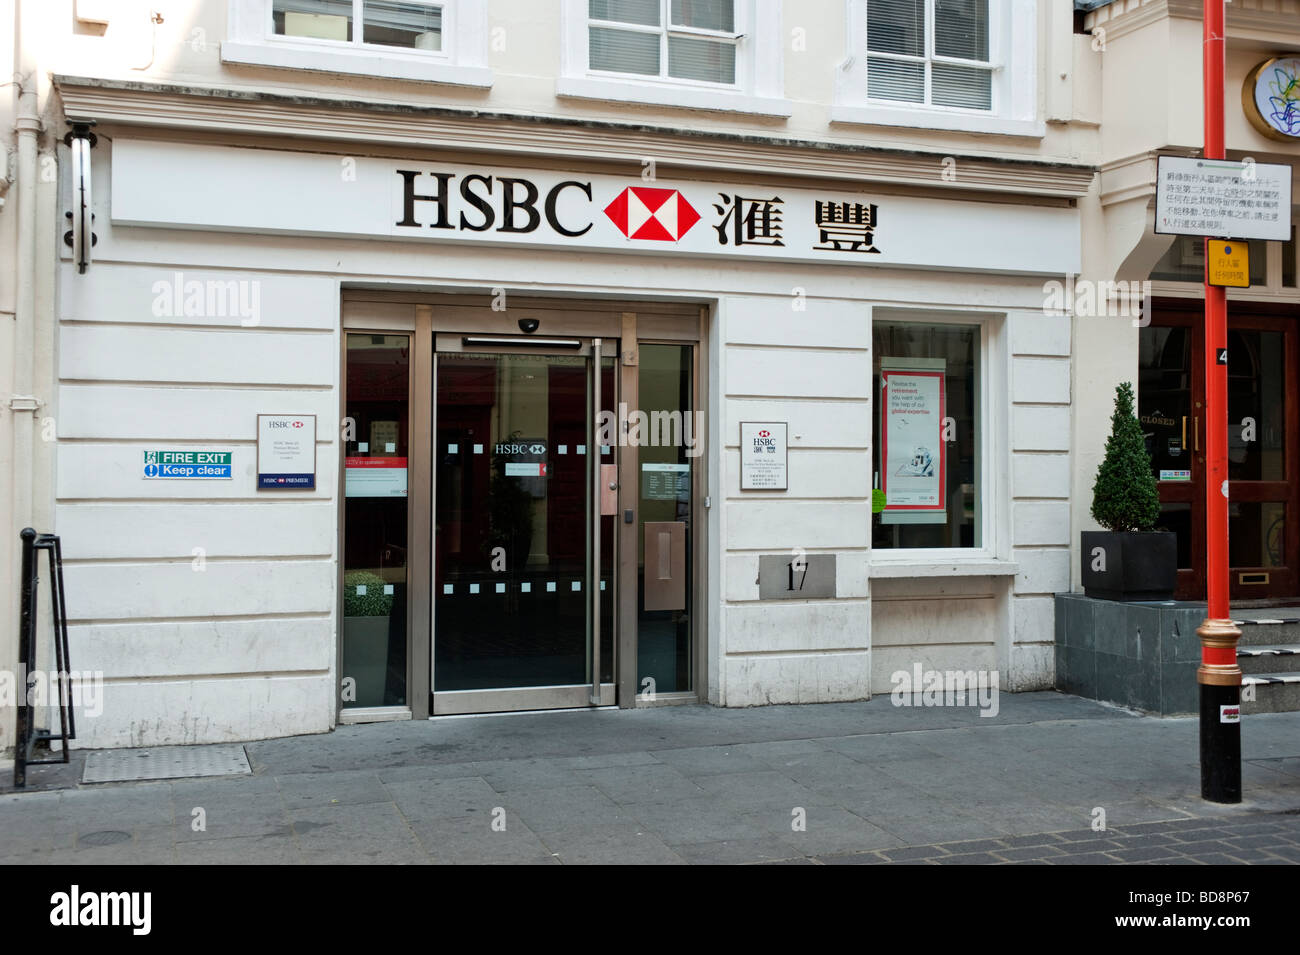 HSBC Bank Branch with English and Chinese branding Stock ...